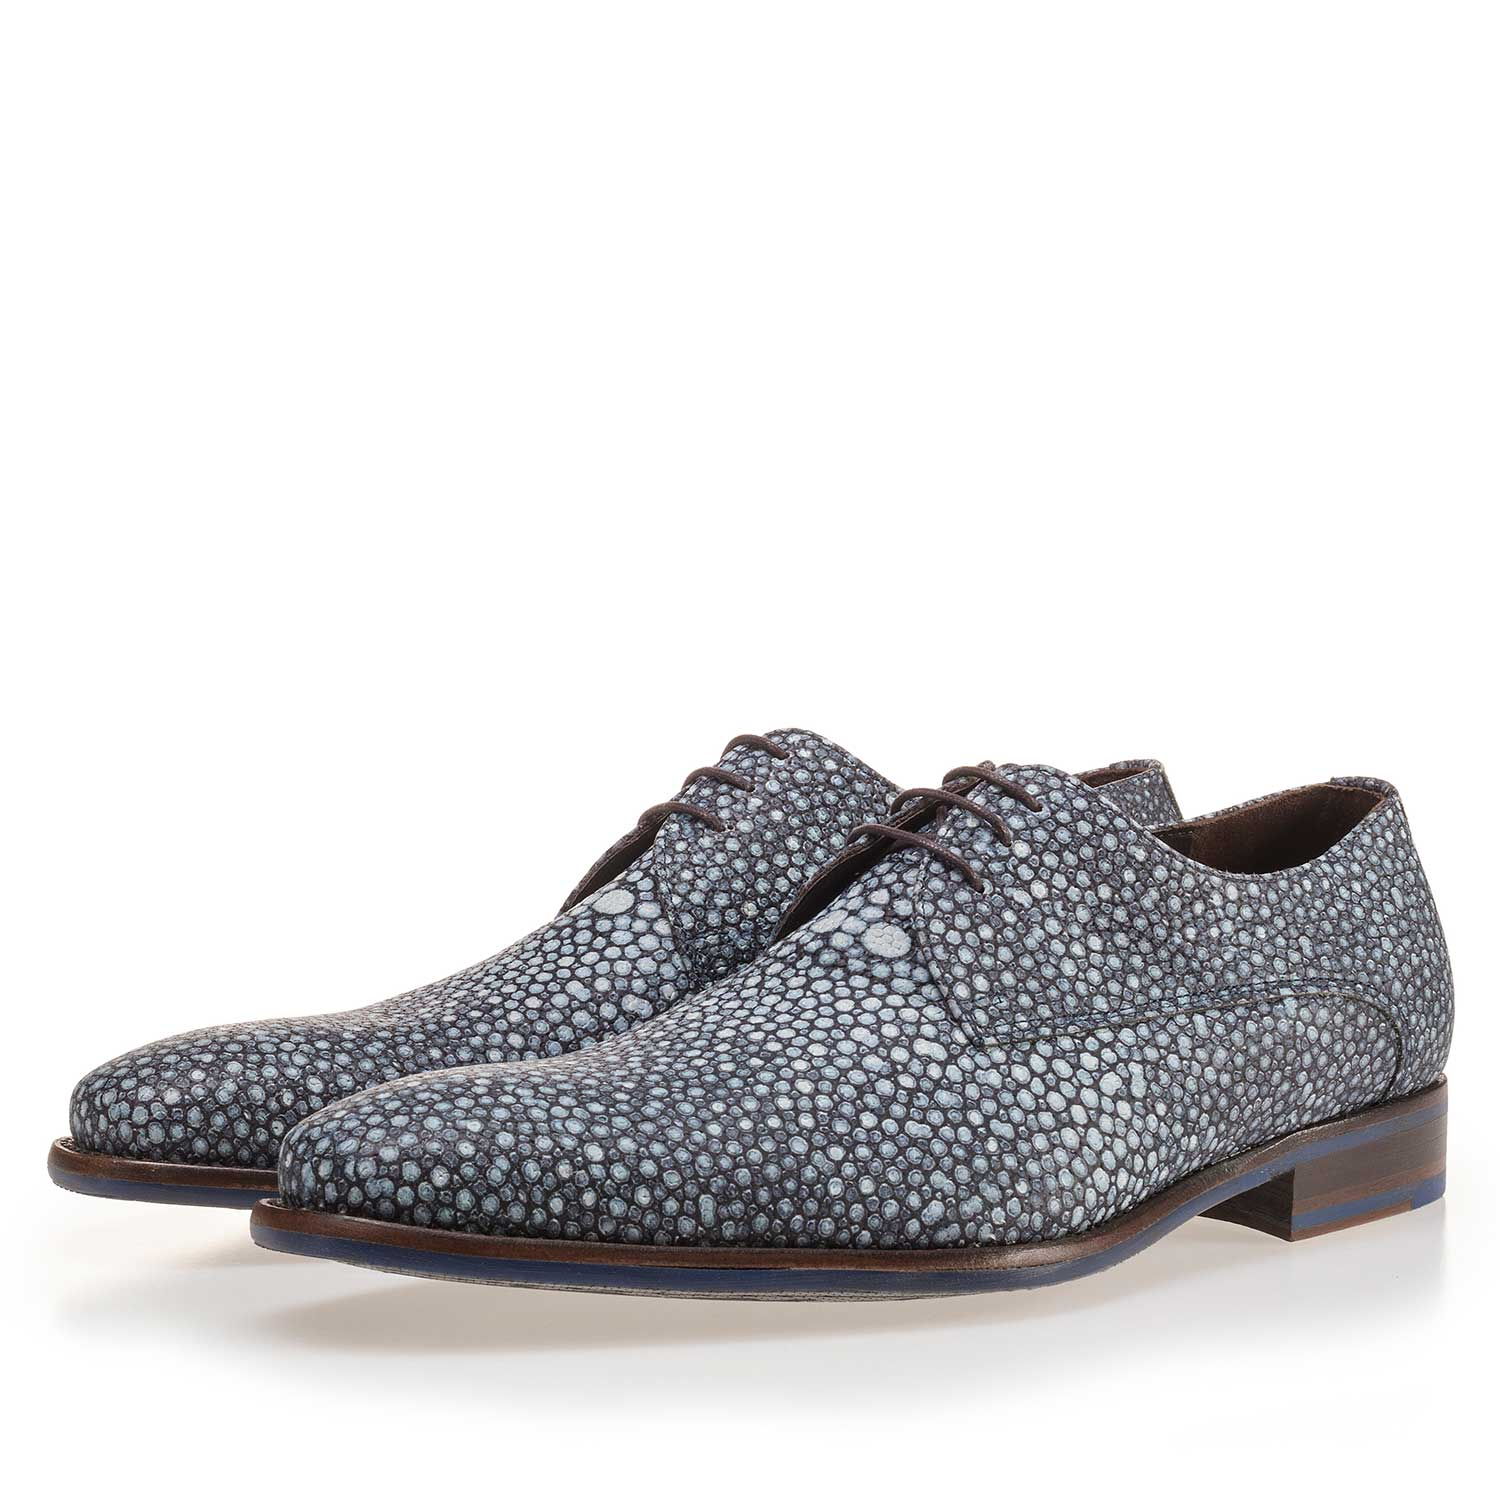 14194/03 - Blue, patterned calf's leather lace shoe